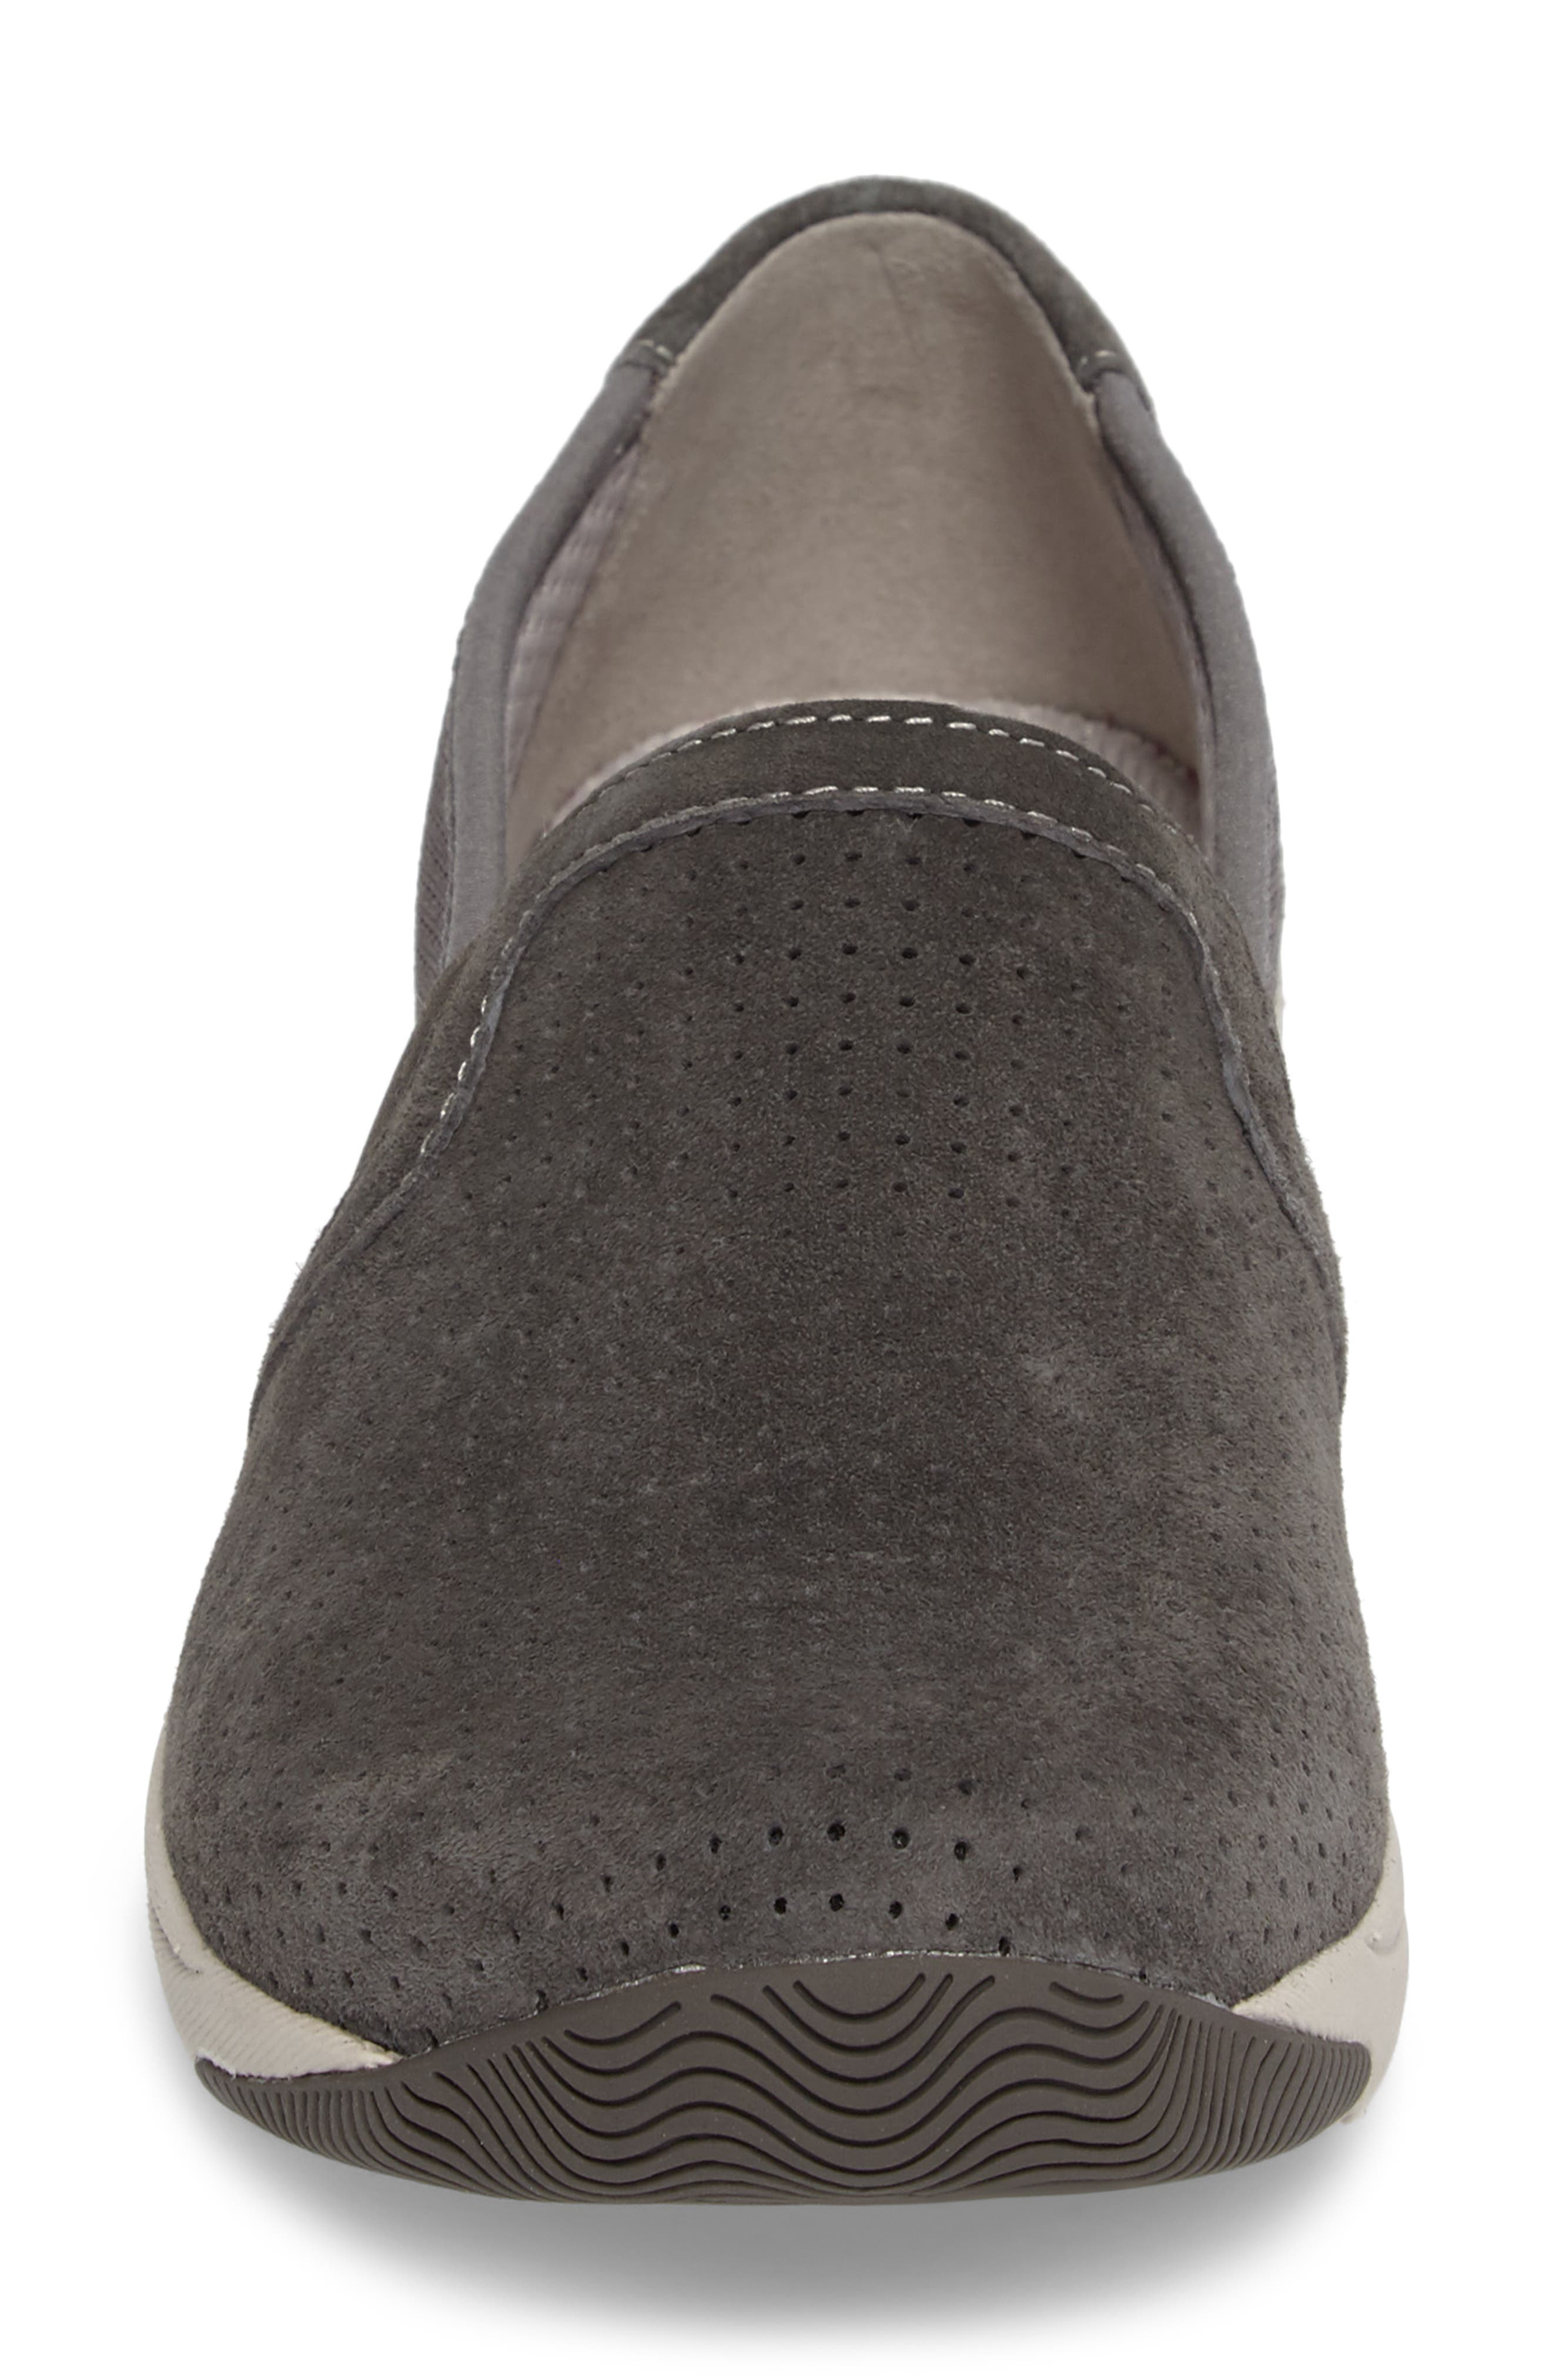 Halifax Collection Halle Slip-On Sneaker,                             Alternate thumbnail 11, color,